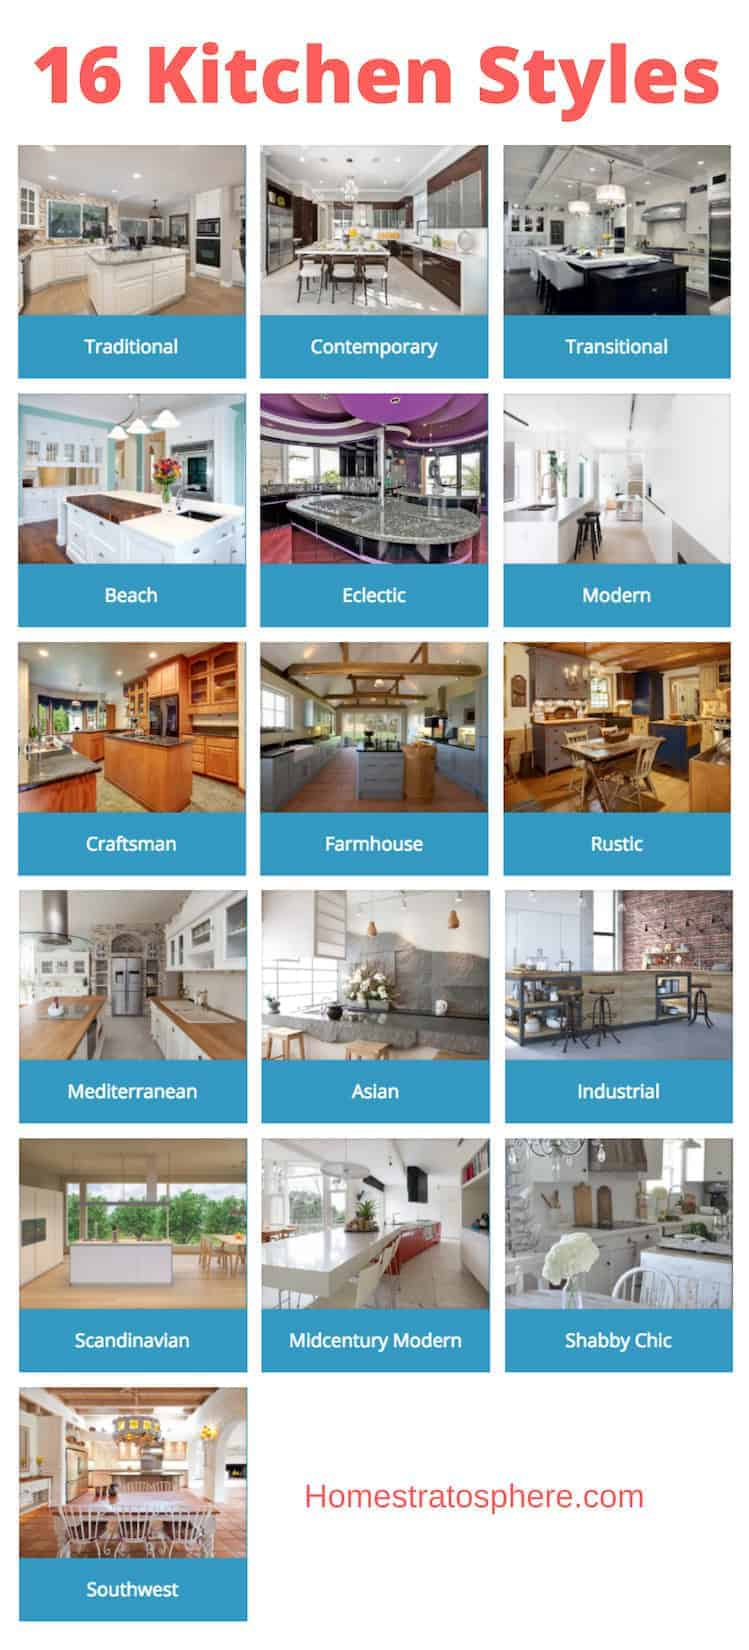 16 types Kitchen Styles